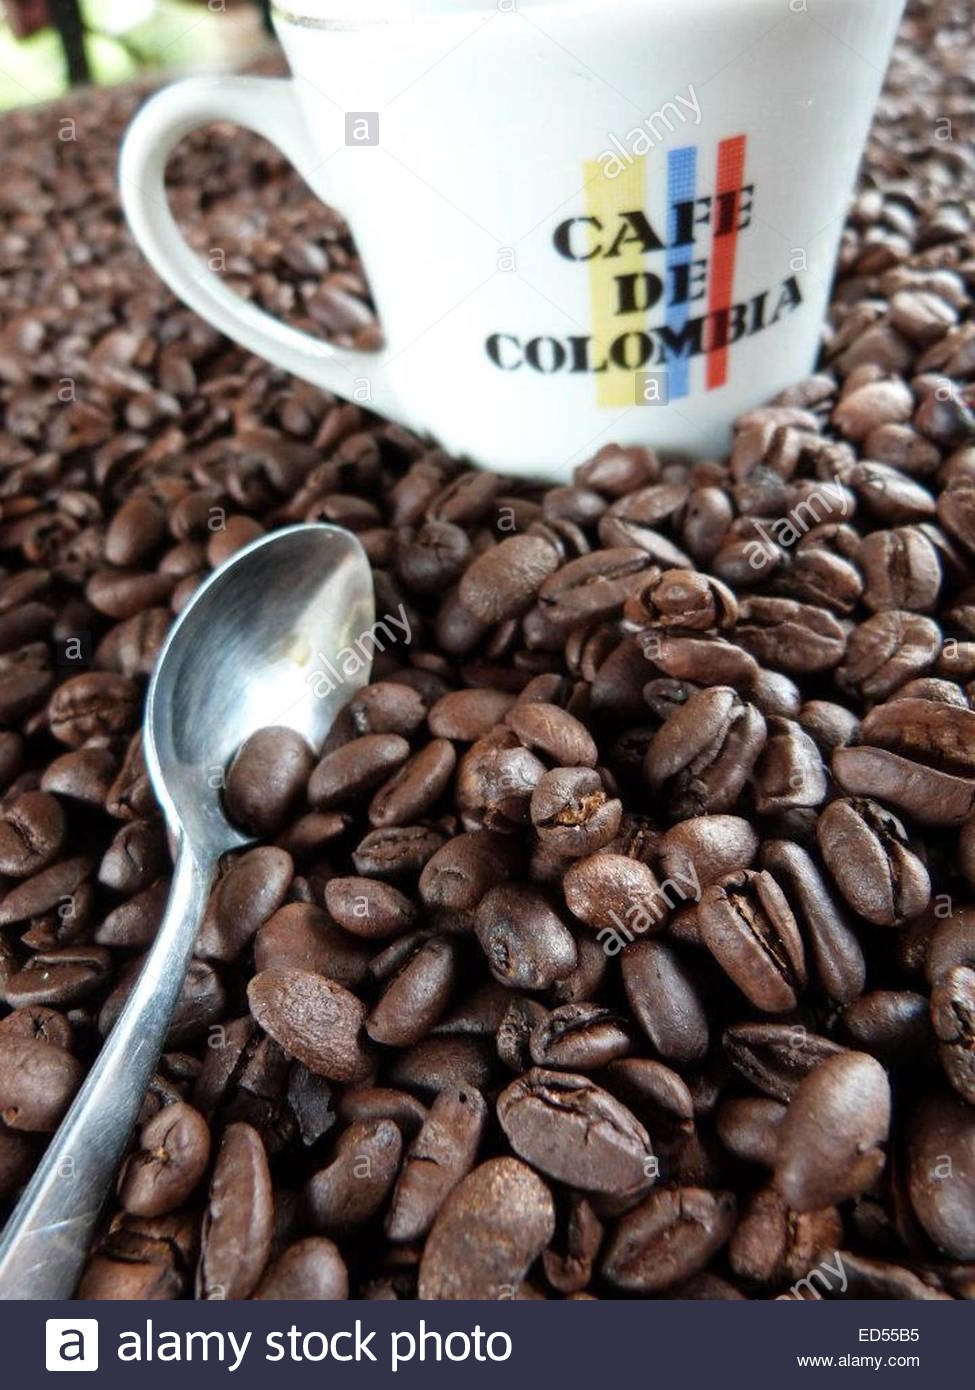 Colombian Coffee beans. Zona Cafetera, Pereira, Colombia Stock Photo, Royalty Free Image: 76945993